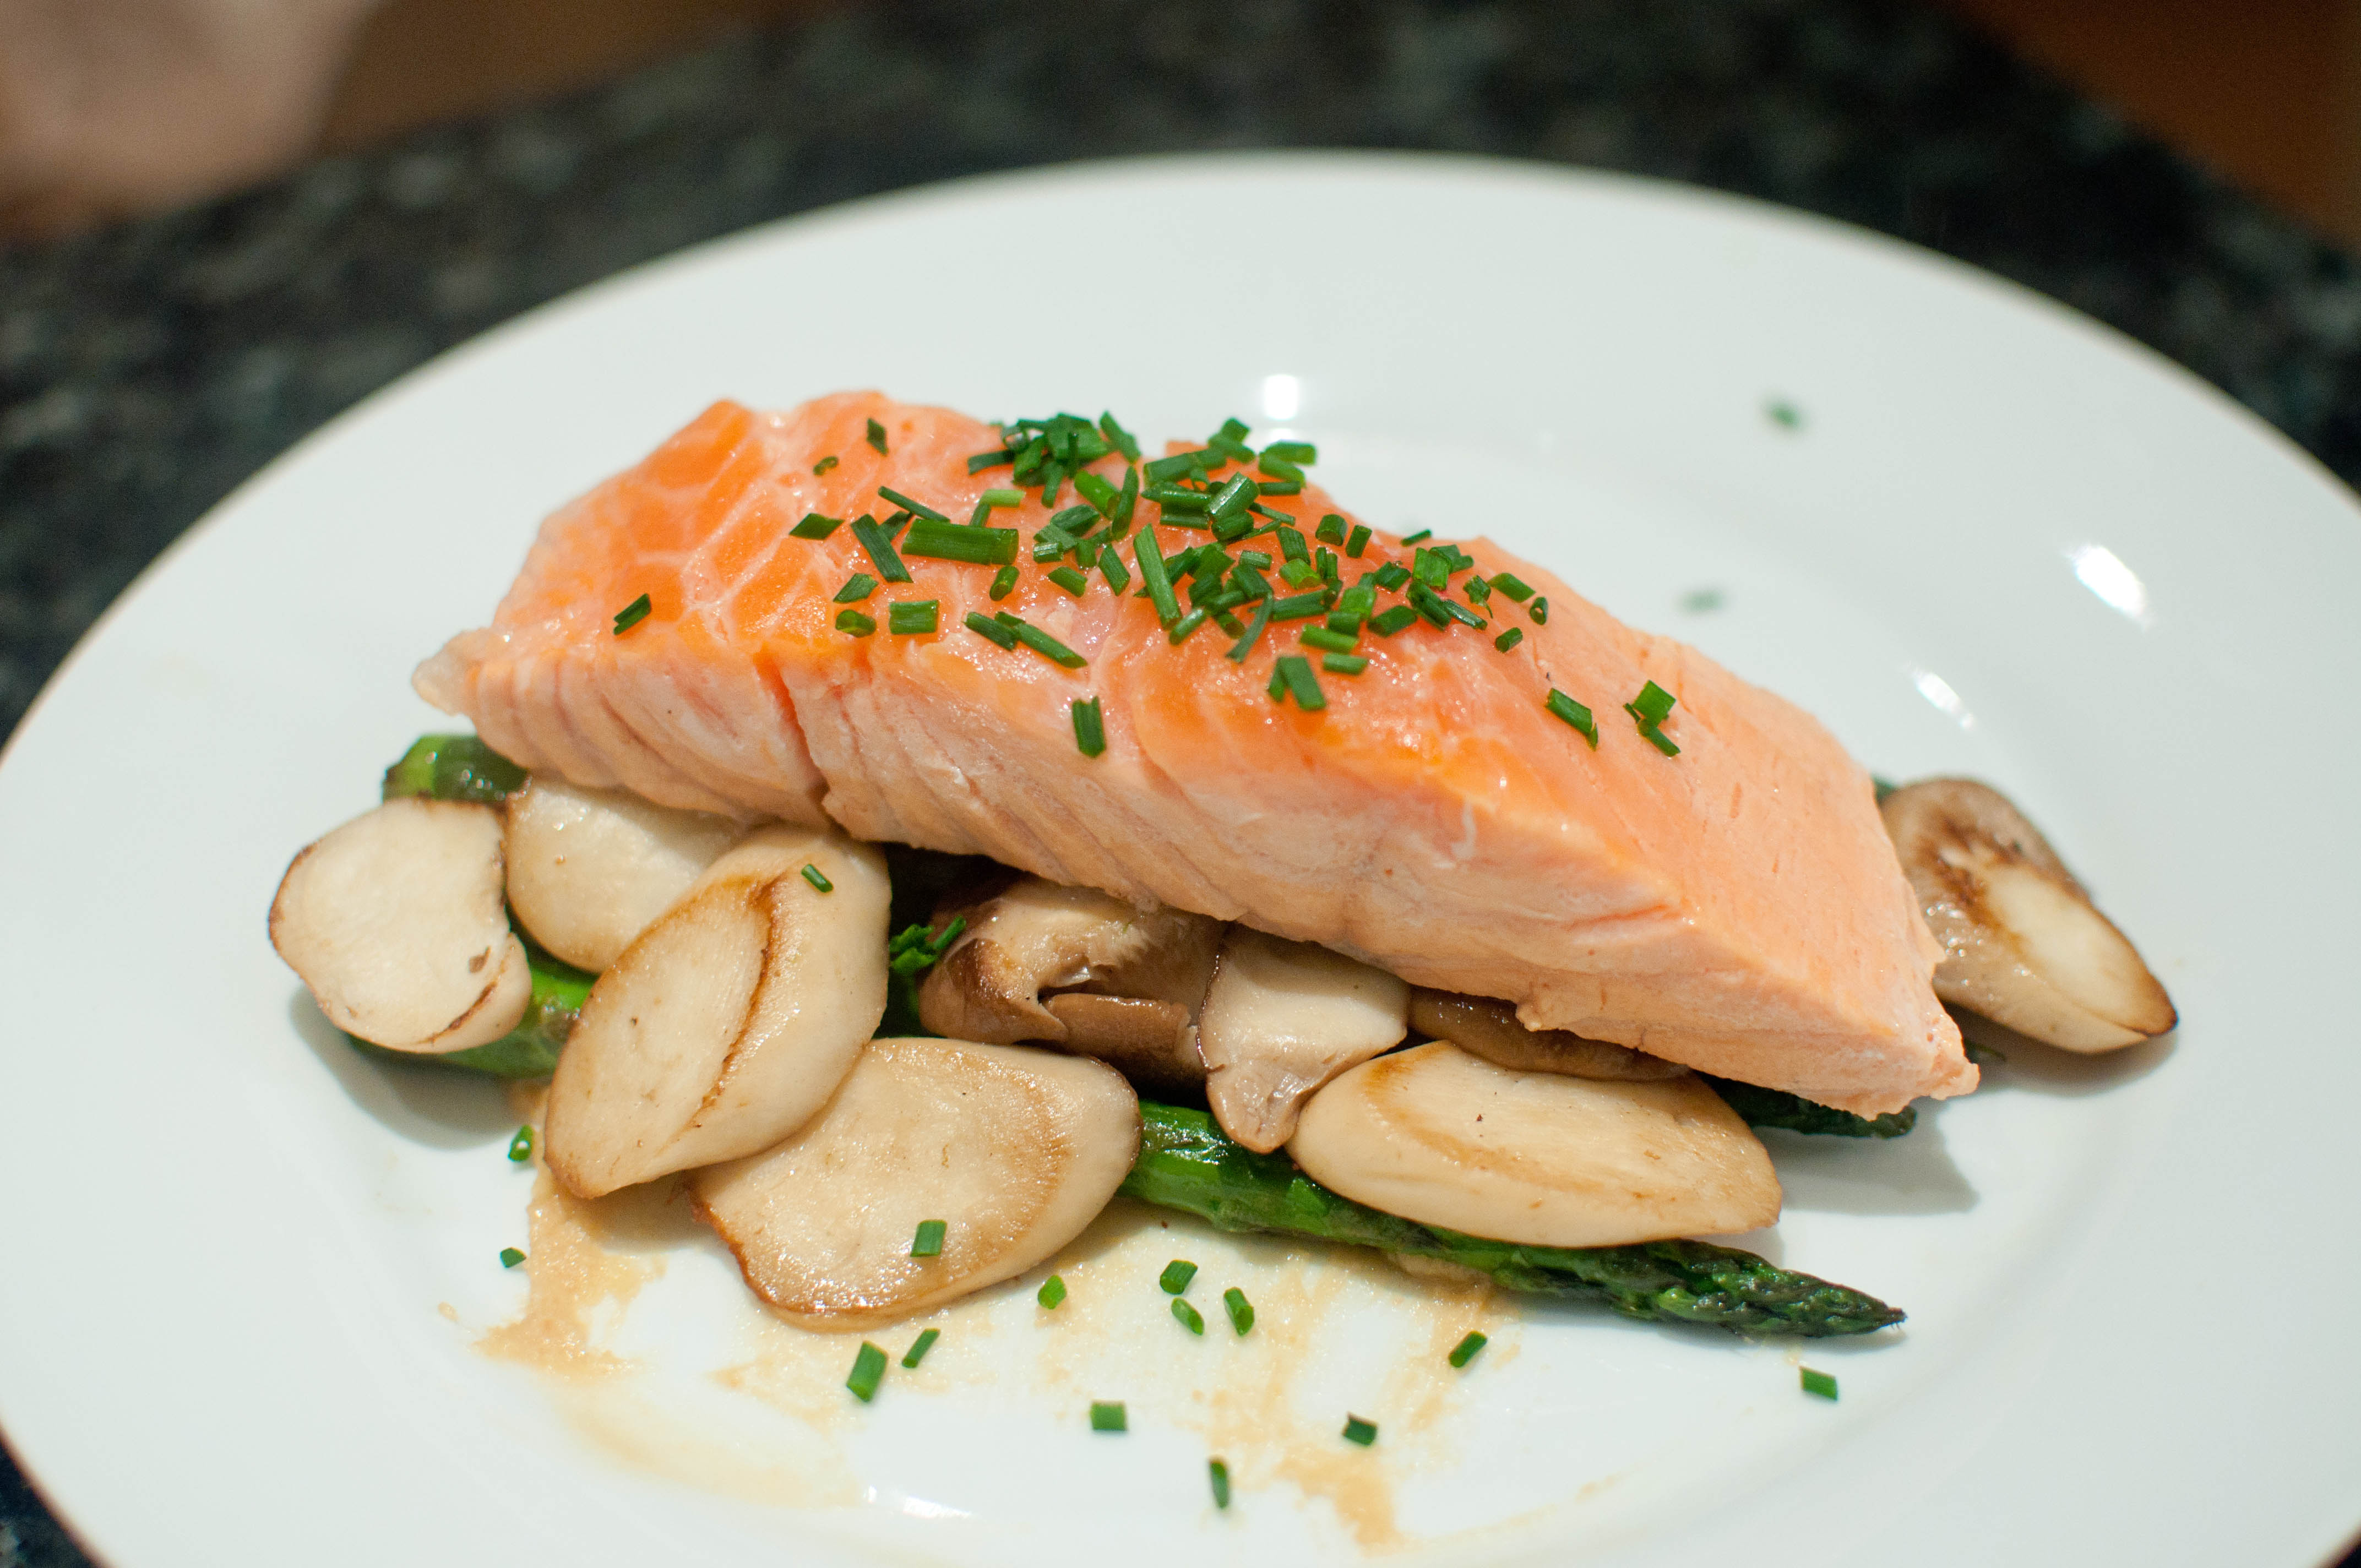 Share this & Dinner for One: Salmon Unilateral with Asparagus and Mushrooms ...